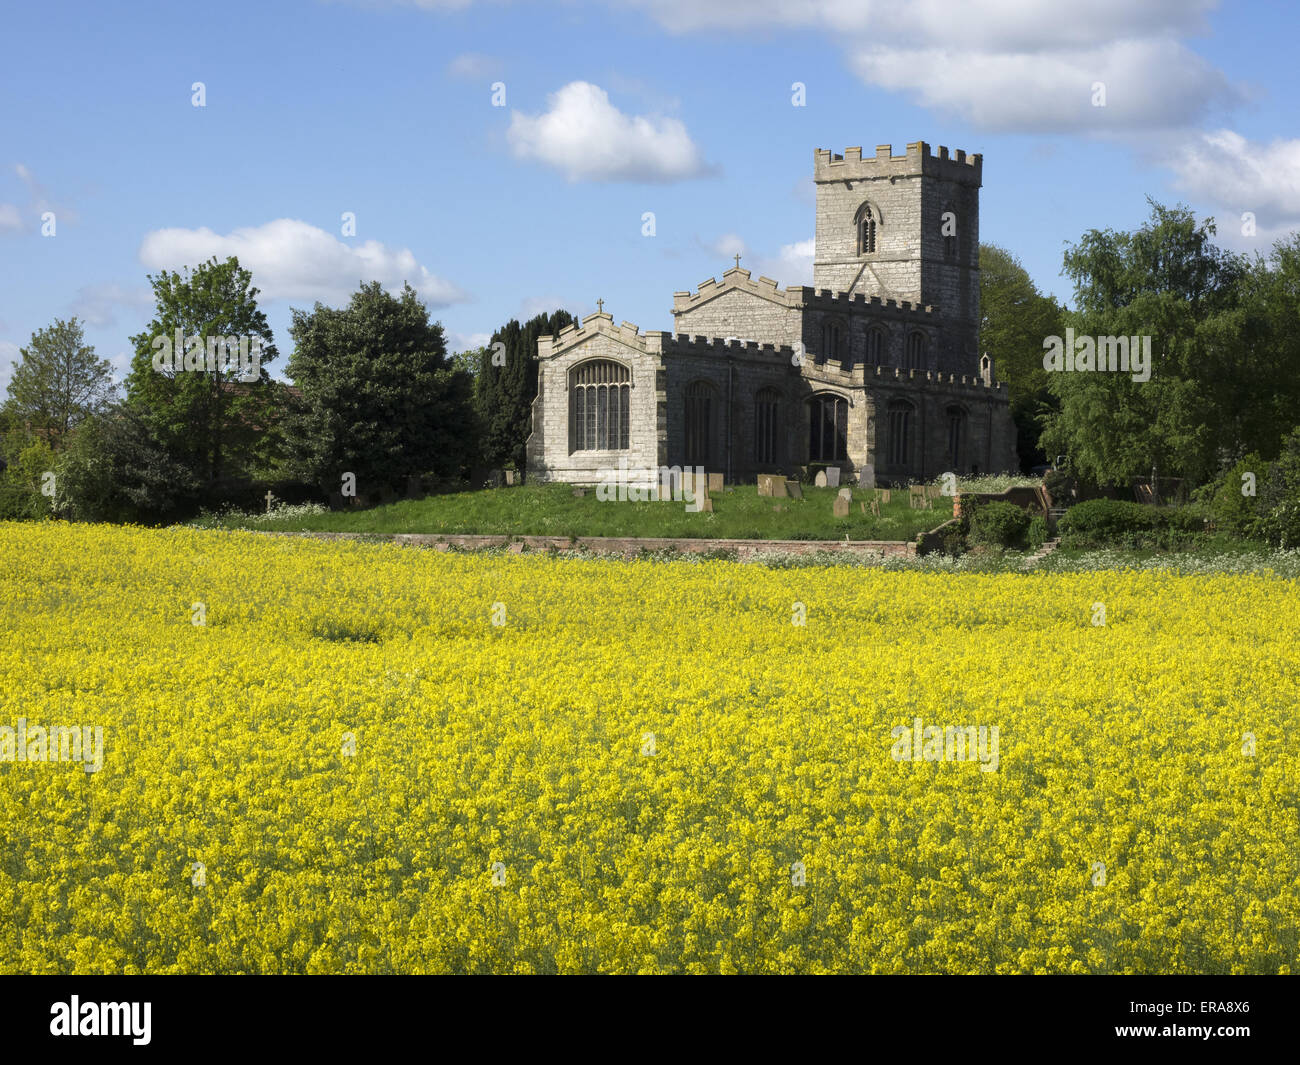 Saint Wilfrid's church in North Muskham Nottinghamshire, as seen from the banks of the river Trent. - Stock Image